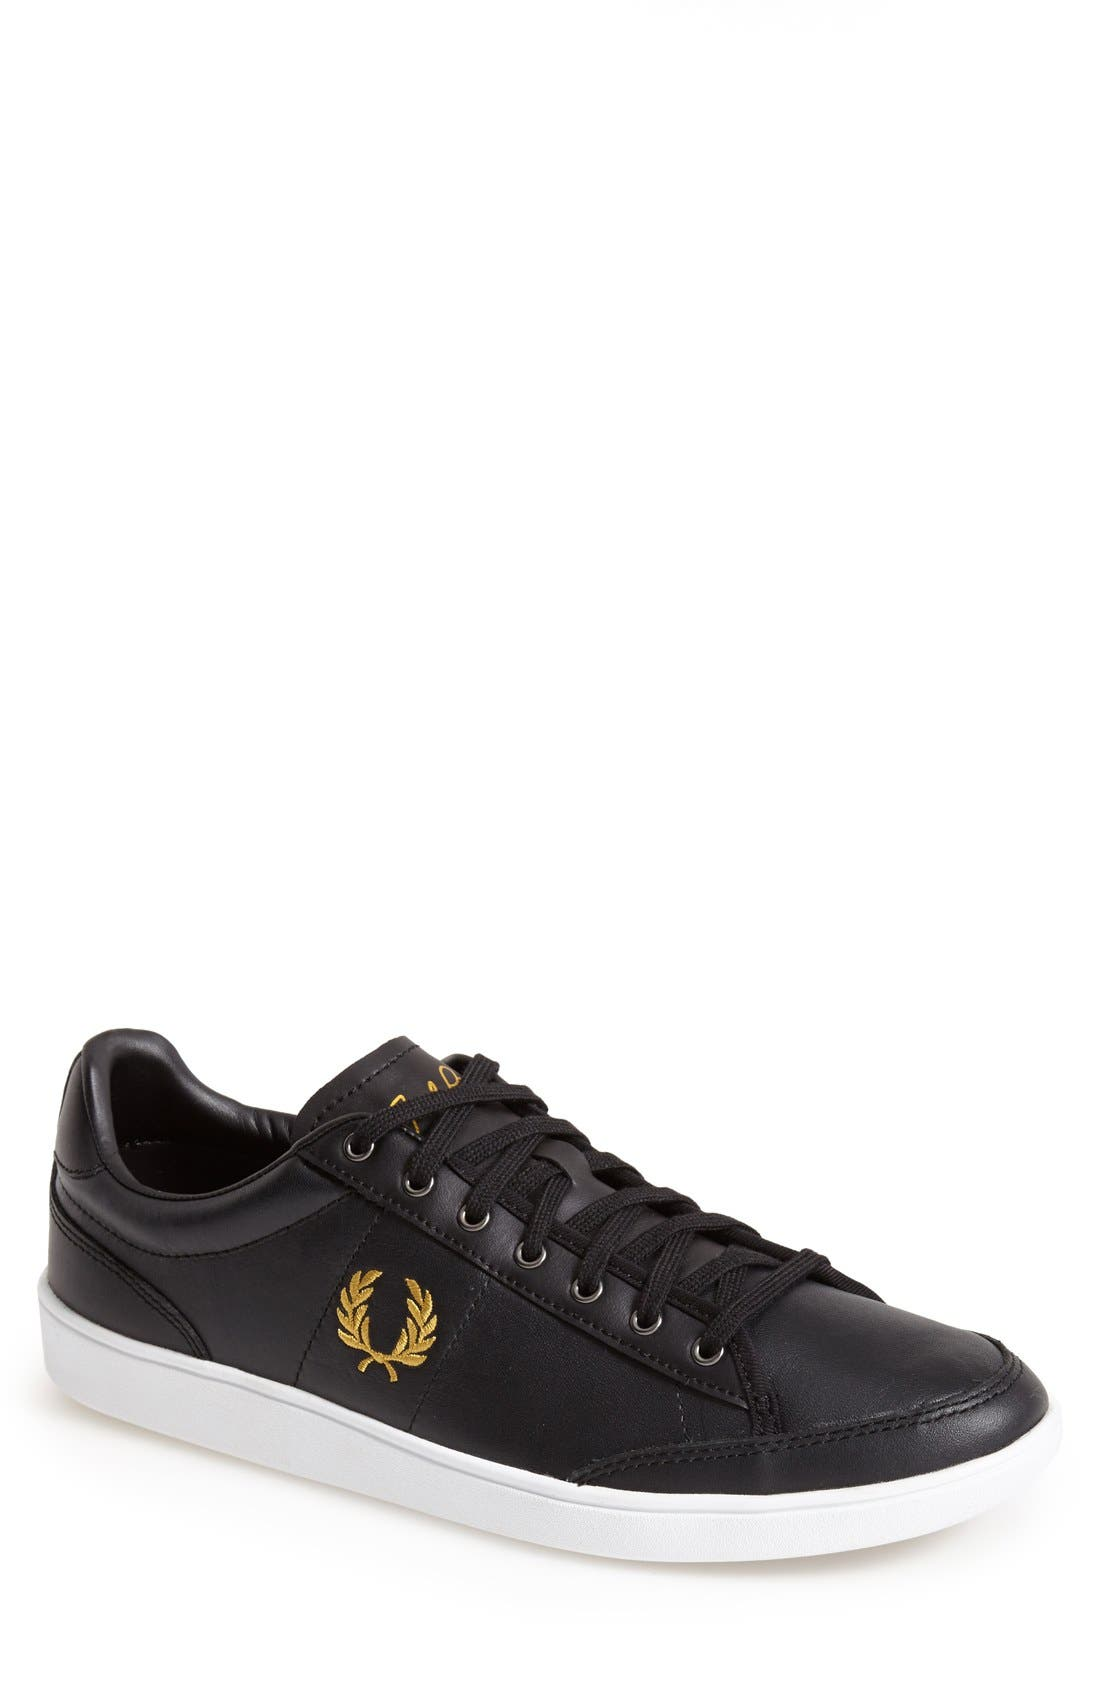 FRED PERRY 'Hopman' Sneaker, Main, color, 001